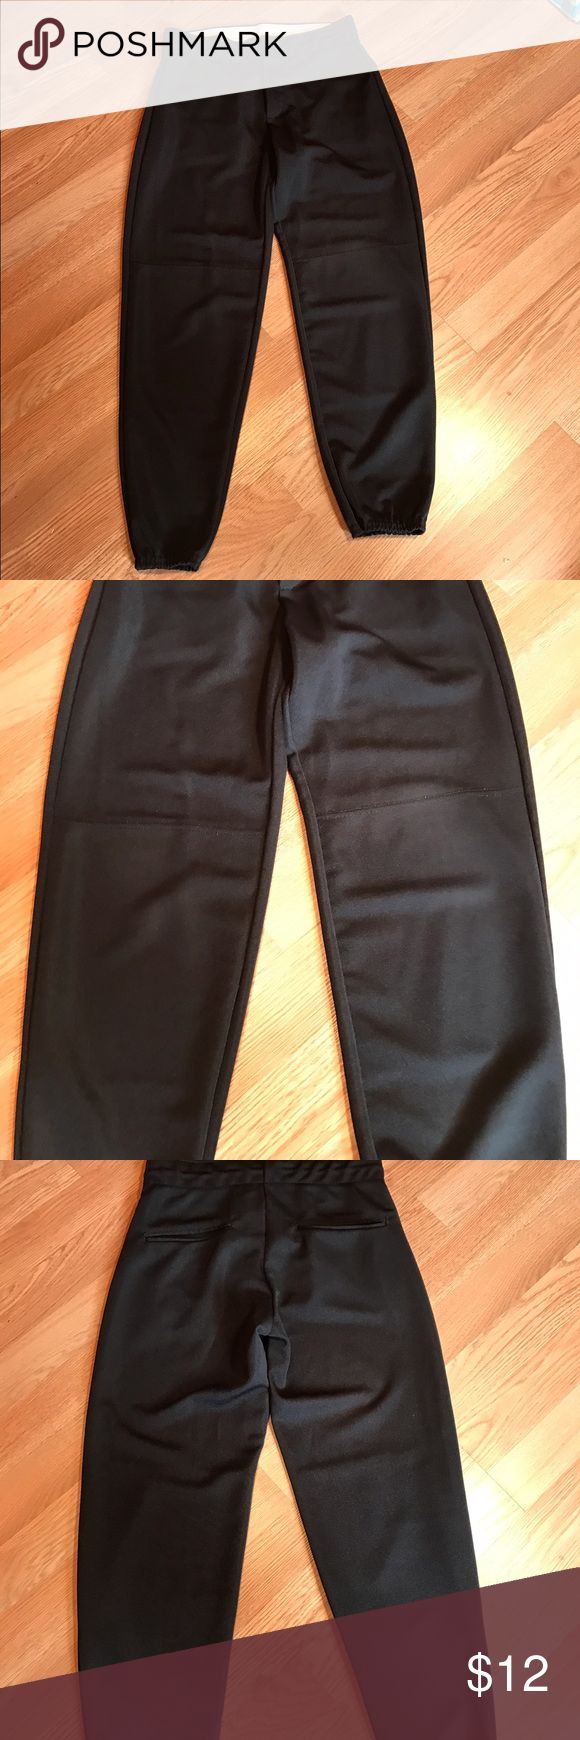 Augusta Sportswear Ladies Softball Pant Great condition. Black. Size small Pants